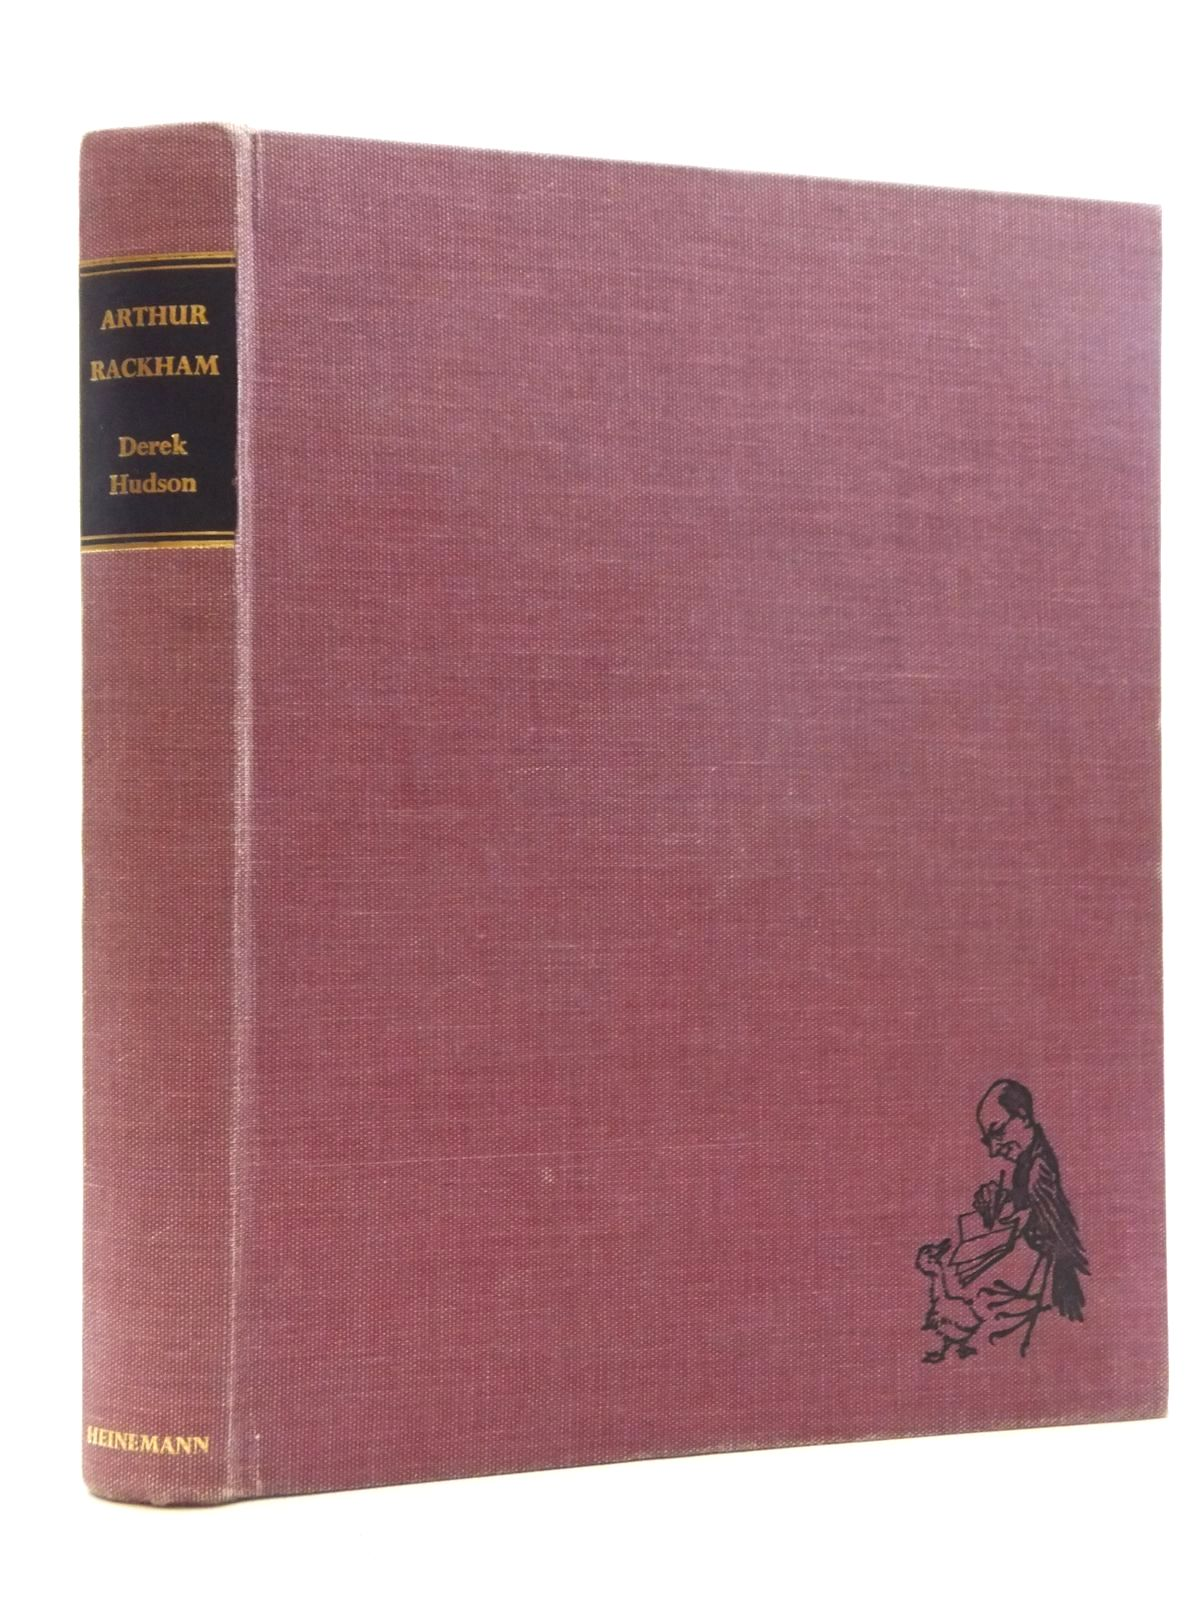 Photo of ARTHUR RACKHAM HIS LIFE AND WORK written by Hudson, Derek illustrated by Rackham, Arthur published by William Heinemann Ltd. (STOCK CODE: 1317086)  for sale by Stella & Rose's Books